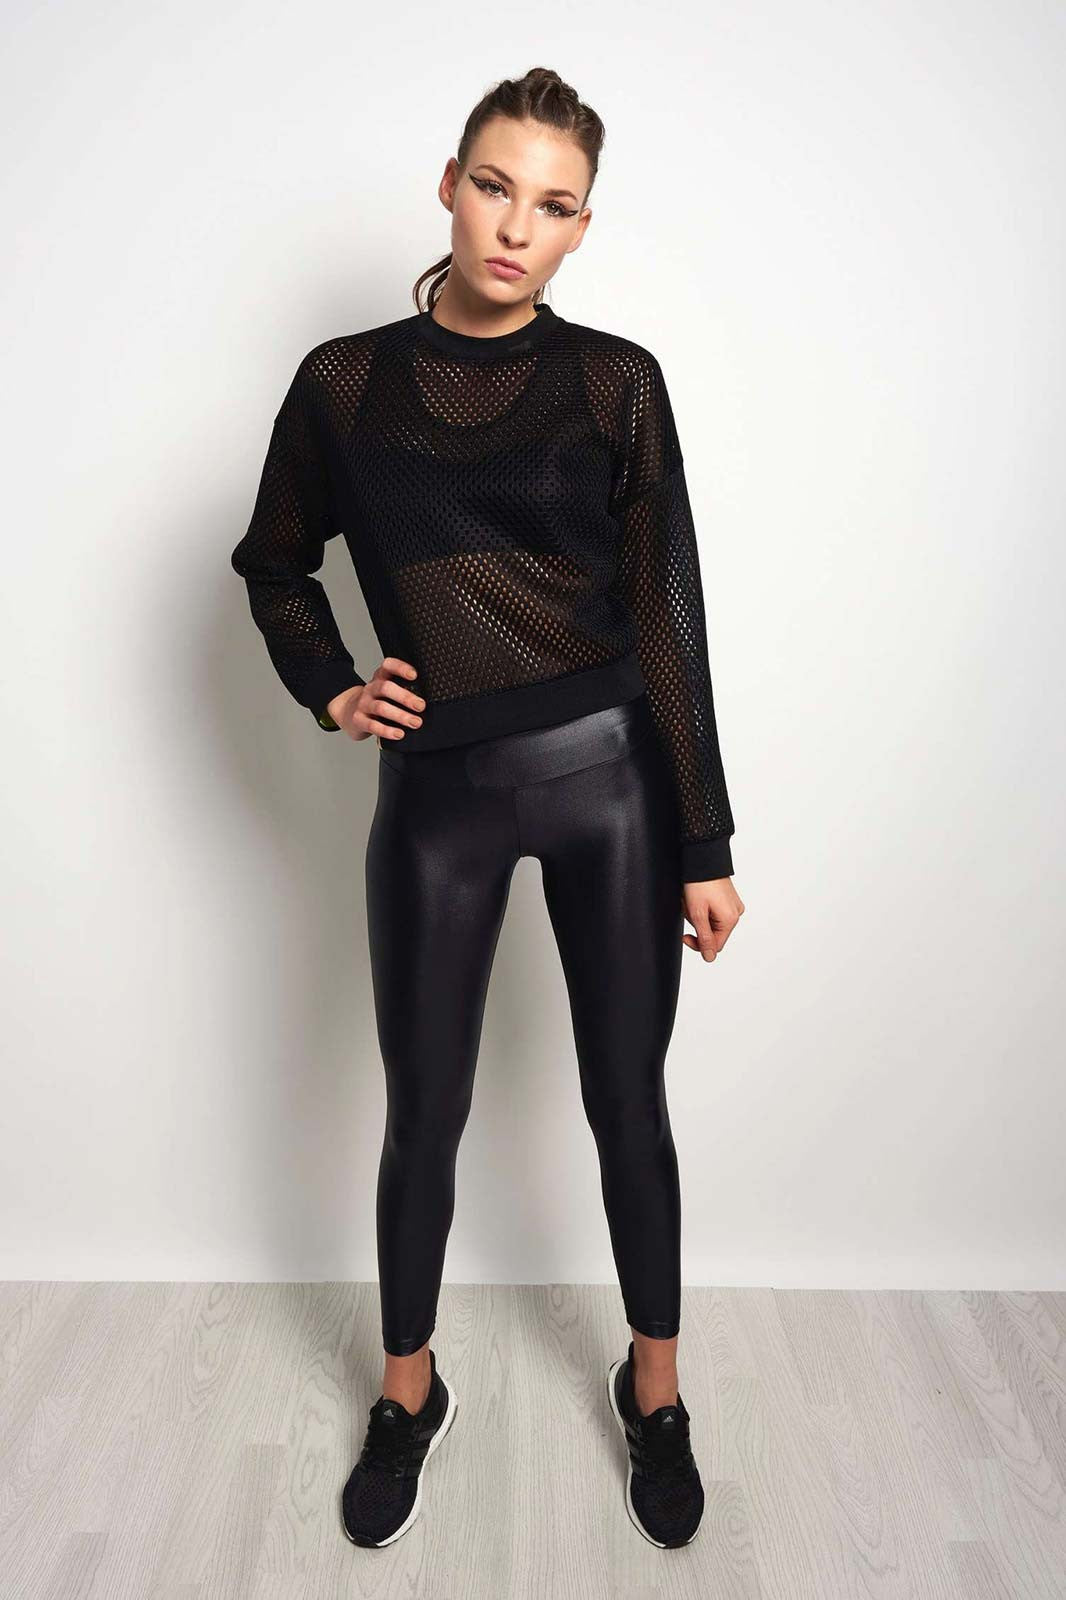 MONREAL Cropped Sweatshirt - Black/Acid image 4 - The Sports Edit